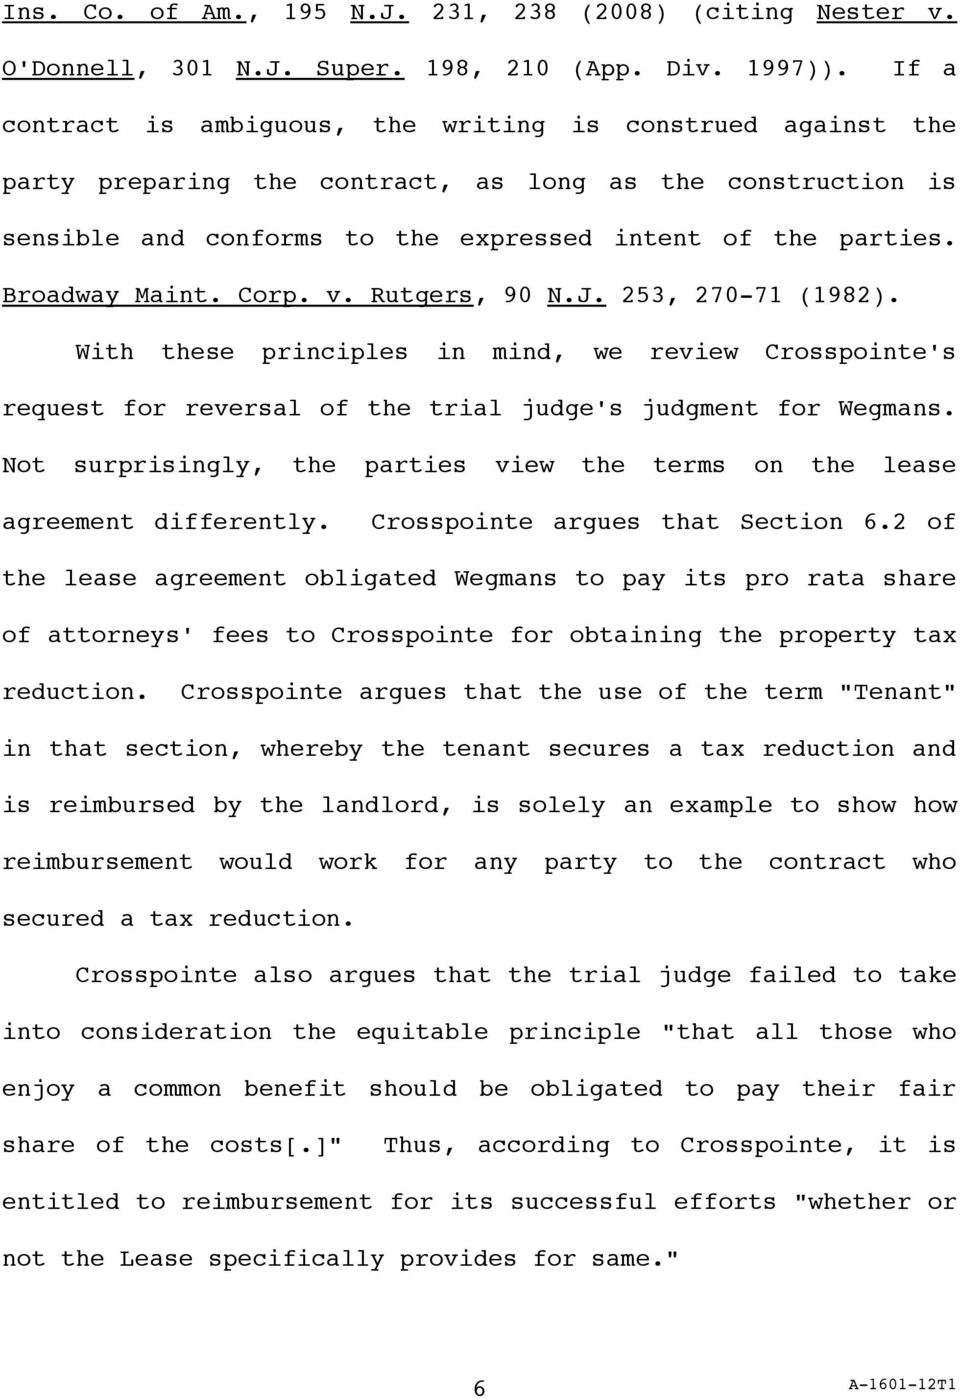 Broadway Maint. Corp. v. Rutgers, 90 N.J. 253, 270-71 (1982). With these principles in mind, we review Crosspointe's request for reversal of the trial judge's judgment for Wegmans.